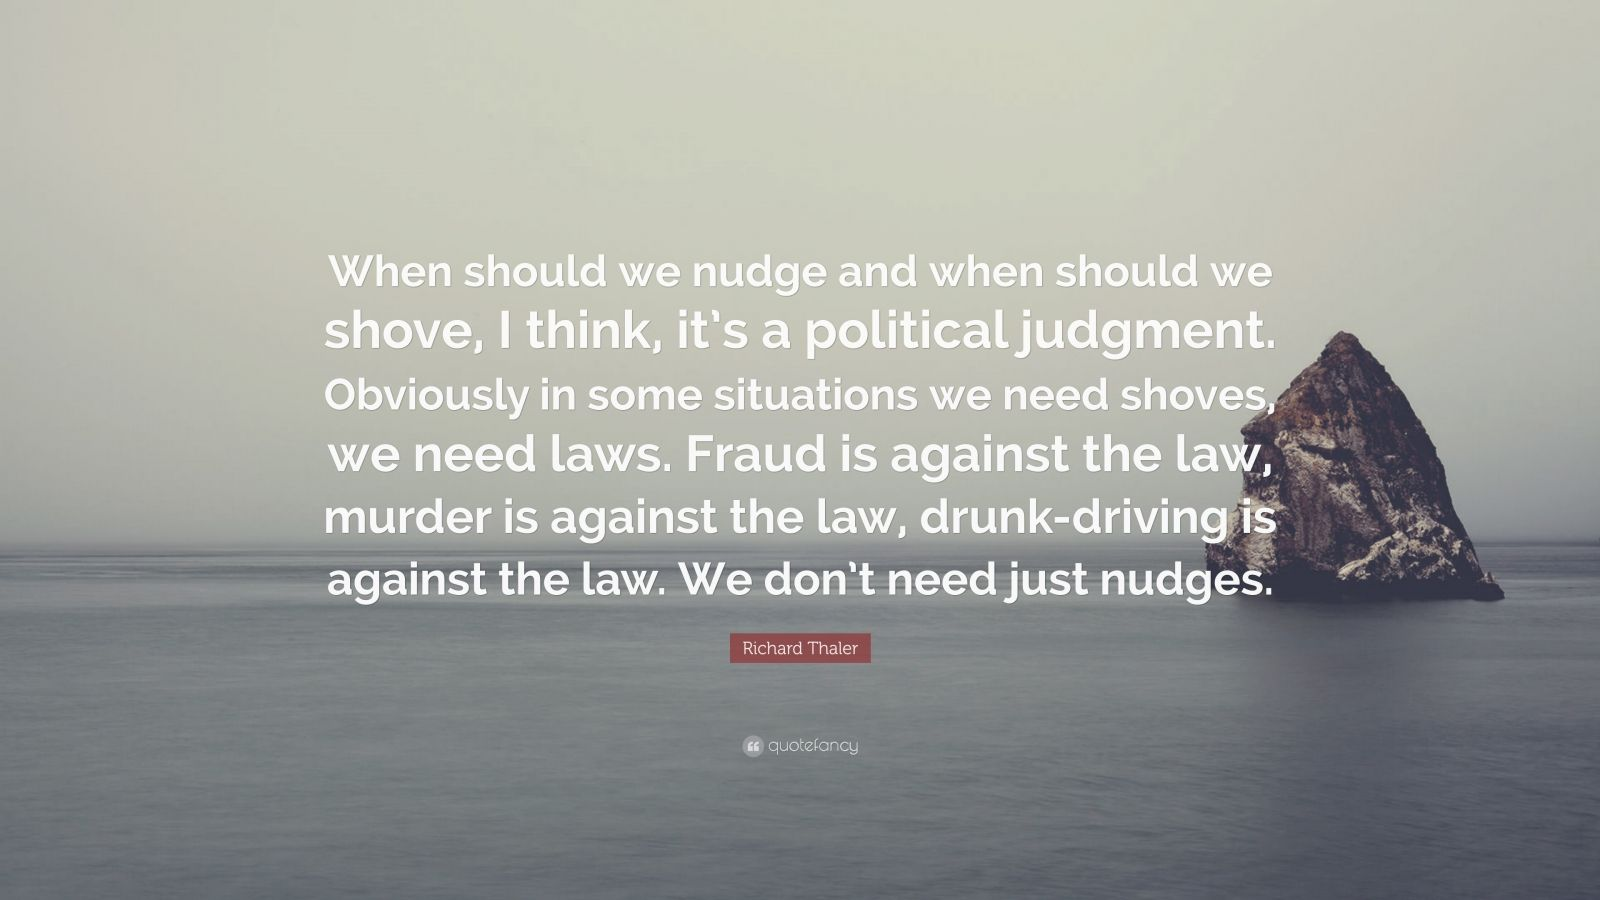 "Richard Thaler Quote: ""When should we nudge and when should we shove, I think, it's a political judgment. Obviously in some situations we need shoves, we need laws. Fraud is against the law, murder is against the law, drunk-driving is against the law. We don't need just nudges."""